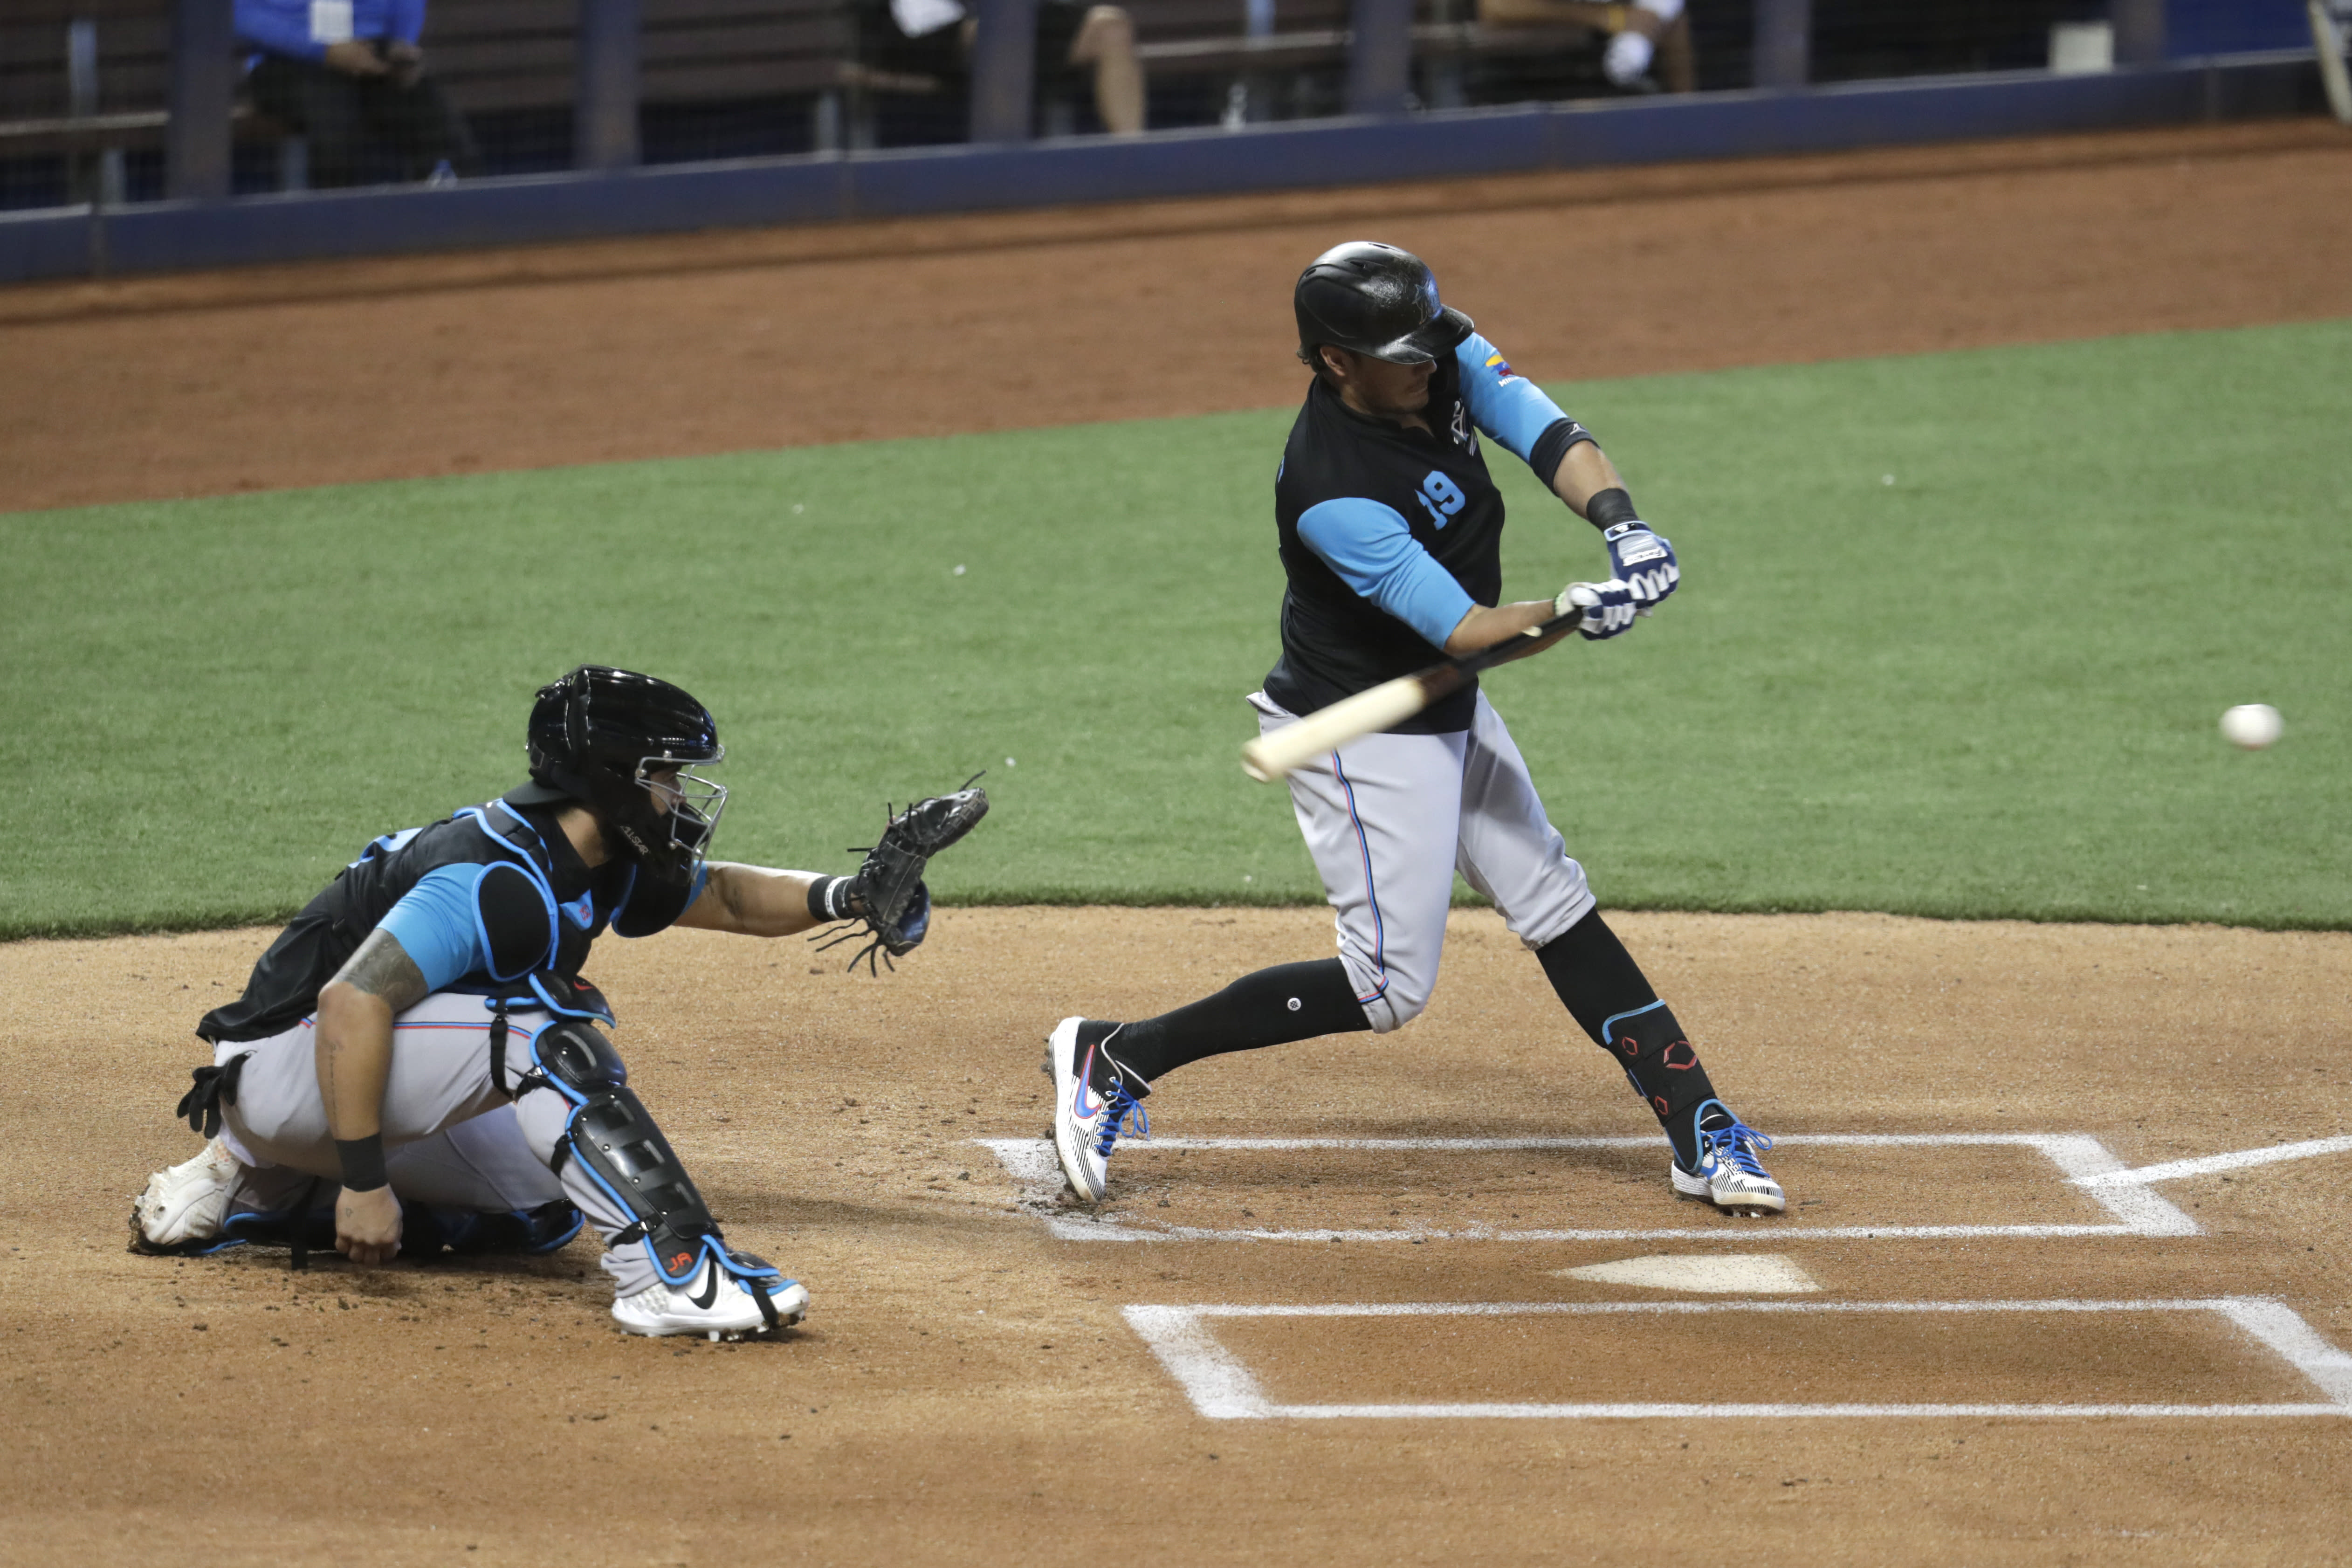 Miami Marlins shortstop Miguel Rojas (19) bats as Jorge Alfaro catches during baseball practice at Marlins Park, Wednesday, July 8, 2020, in Miami. (AP Photo/Lynne Sladky)